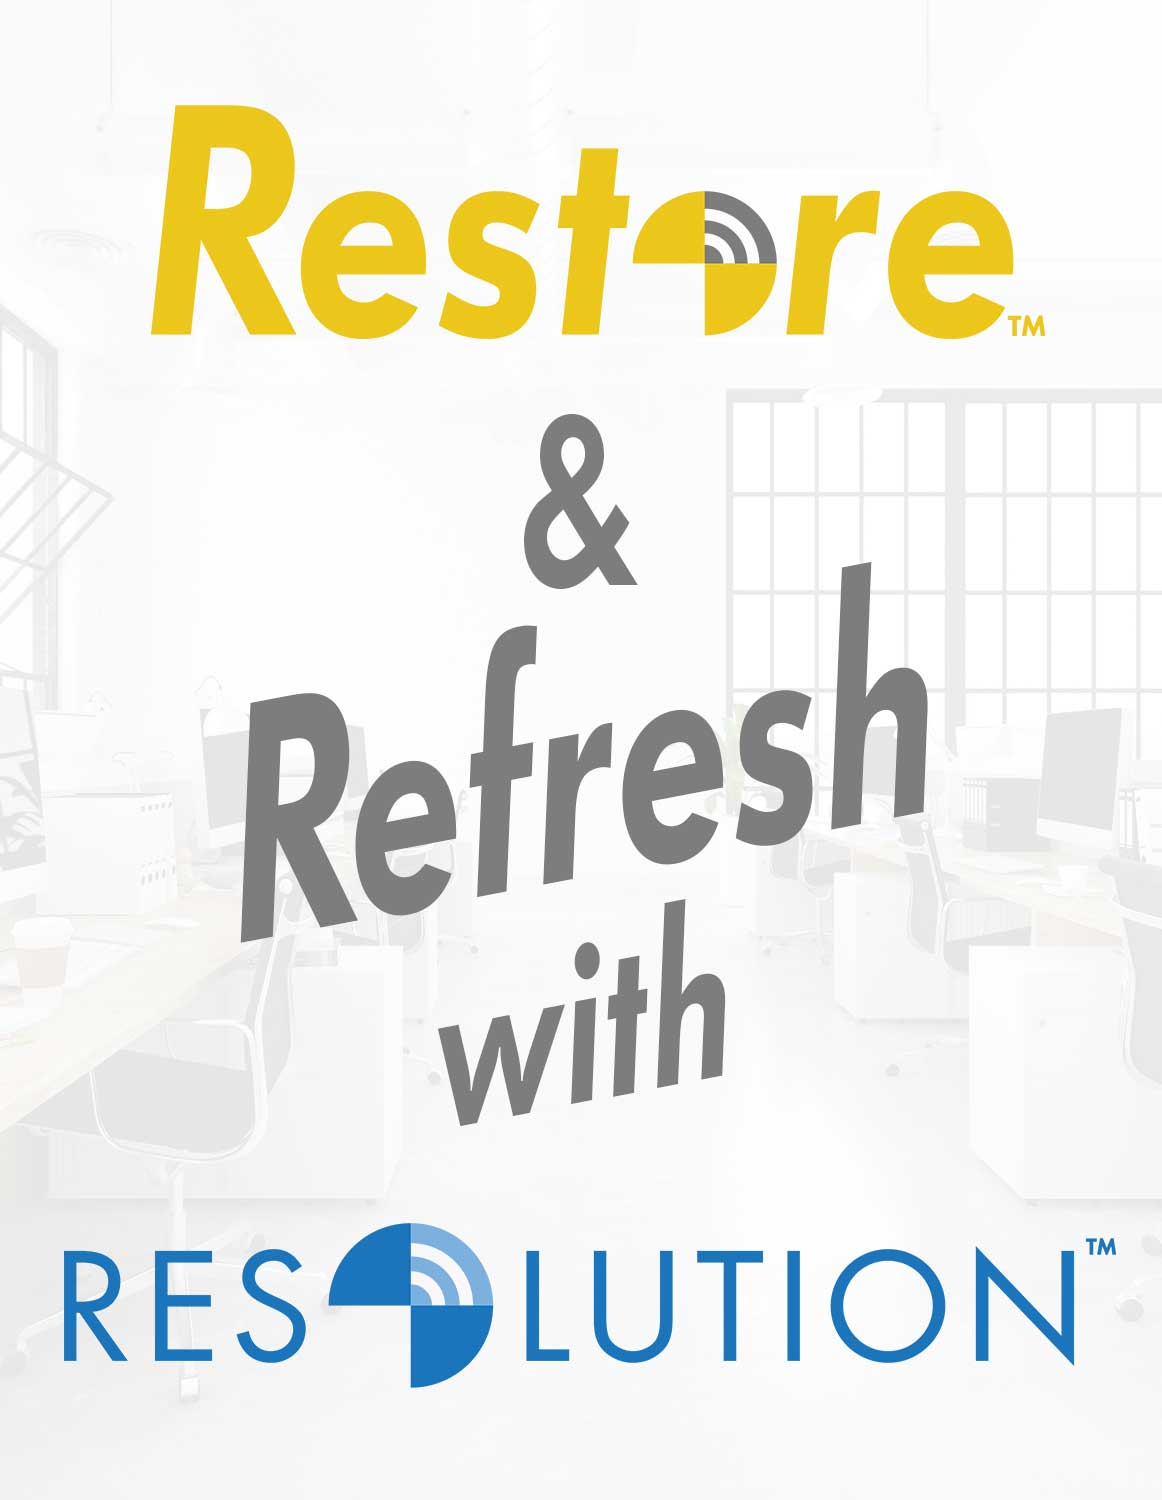 Restore-Refresh-with-Resolution-TM-image